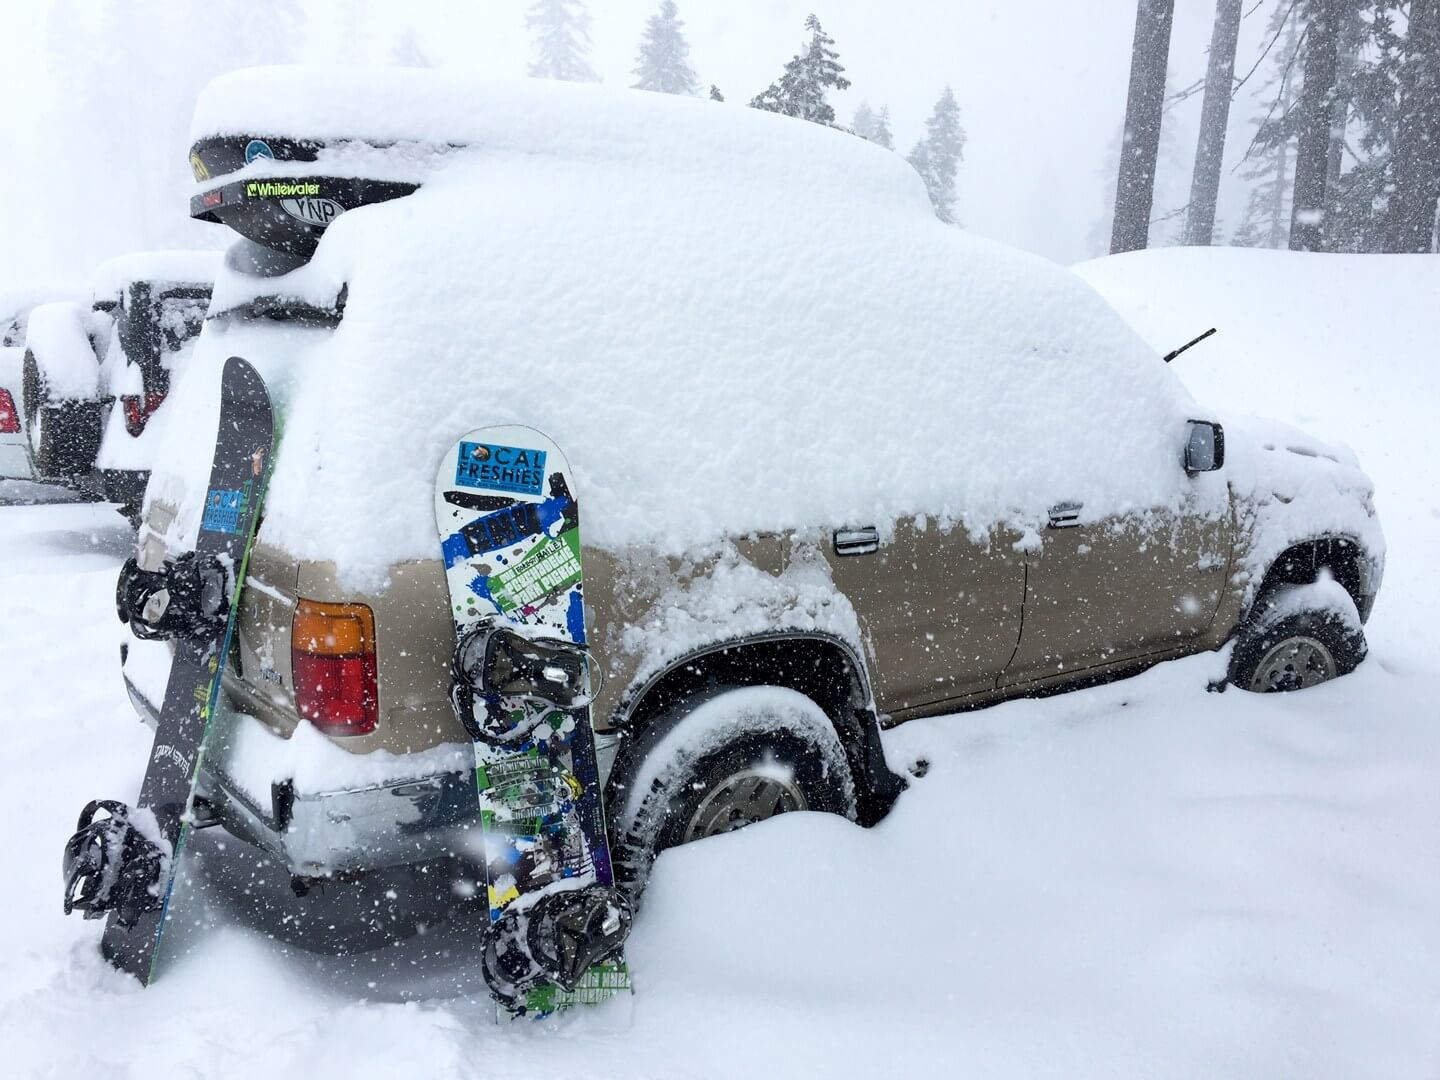 Toyota 4Runner covered in snow at Sierra-at-Tahoe